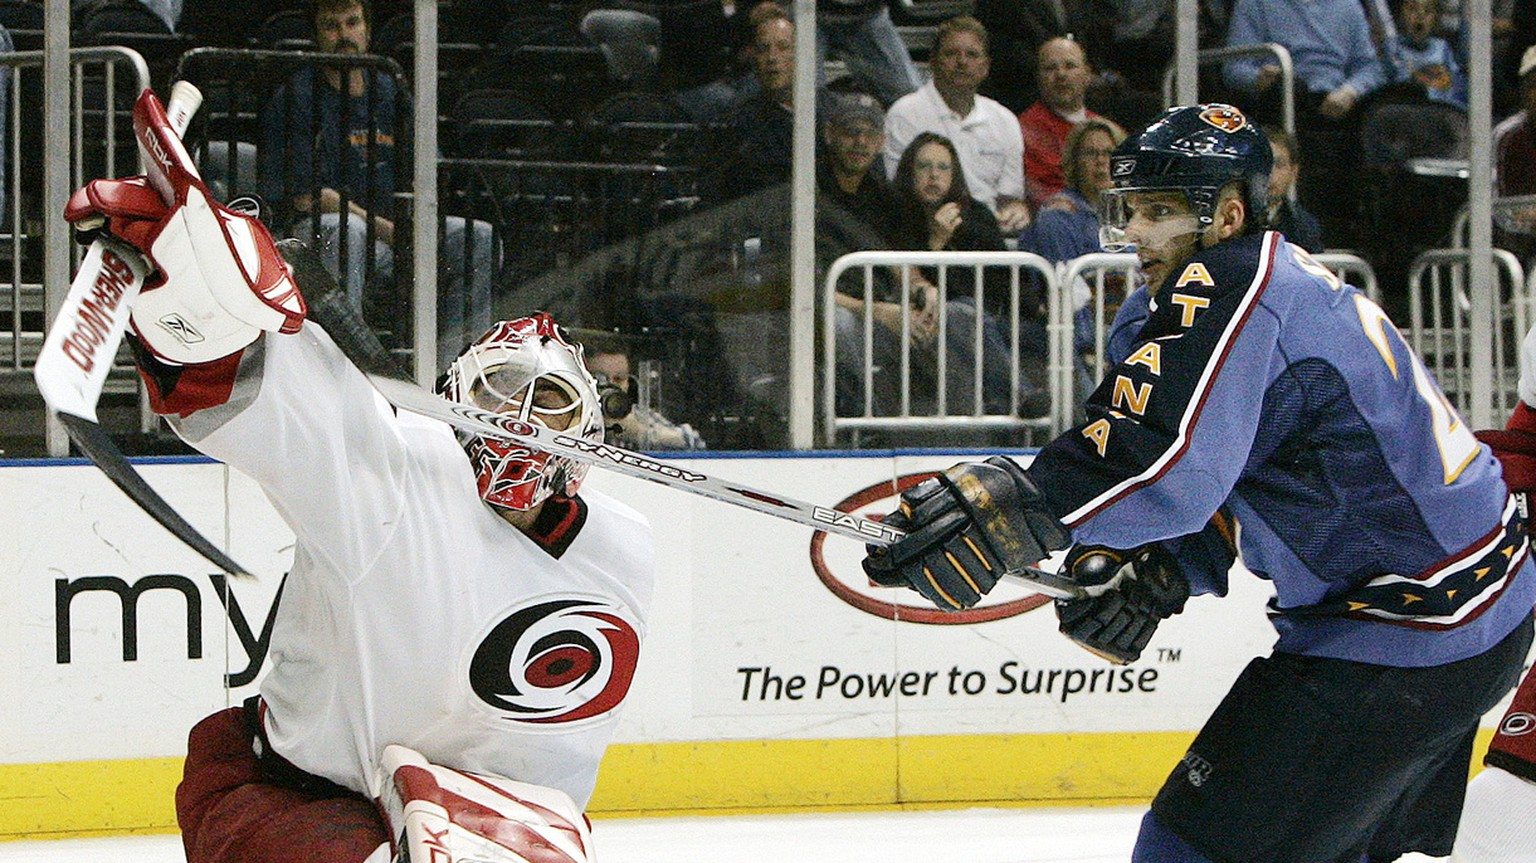 Atlanta Thrashers' Patrik Stefan, right, of the Czech Republic, reaches for the puck over Carolina Hurricanes goalie Martin Gerber, of Switzerland, in front of the goal during the first period of an NHL hockey game Saturday, April 8, 2006, in Atlanta. (AP Photo/John Bazemore)